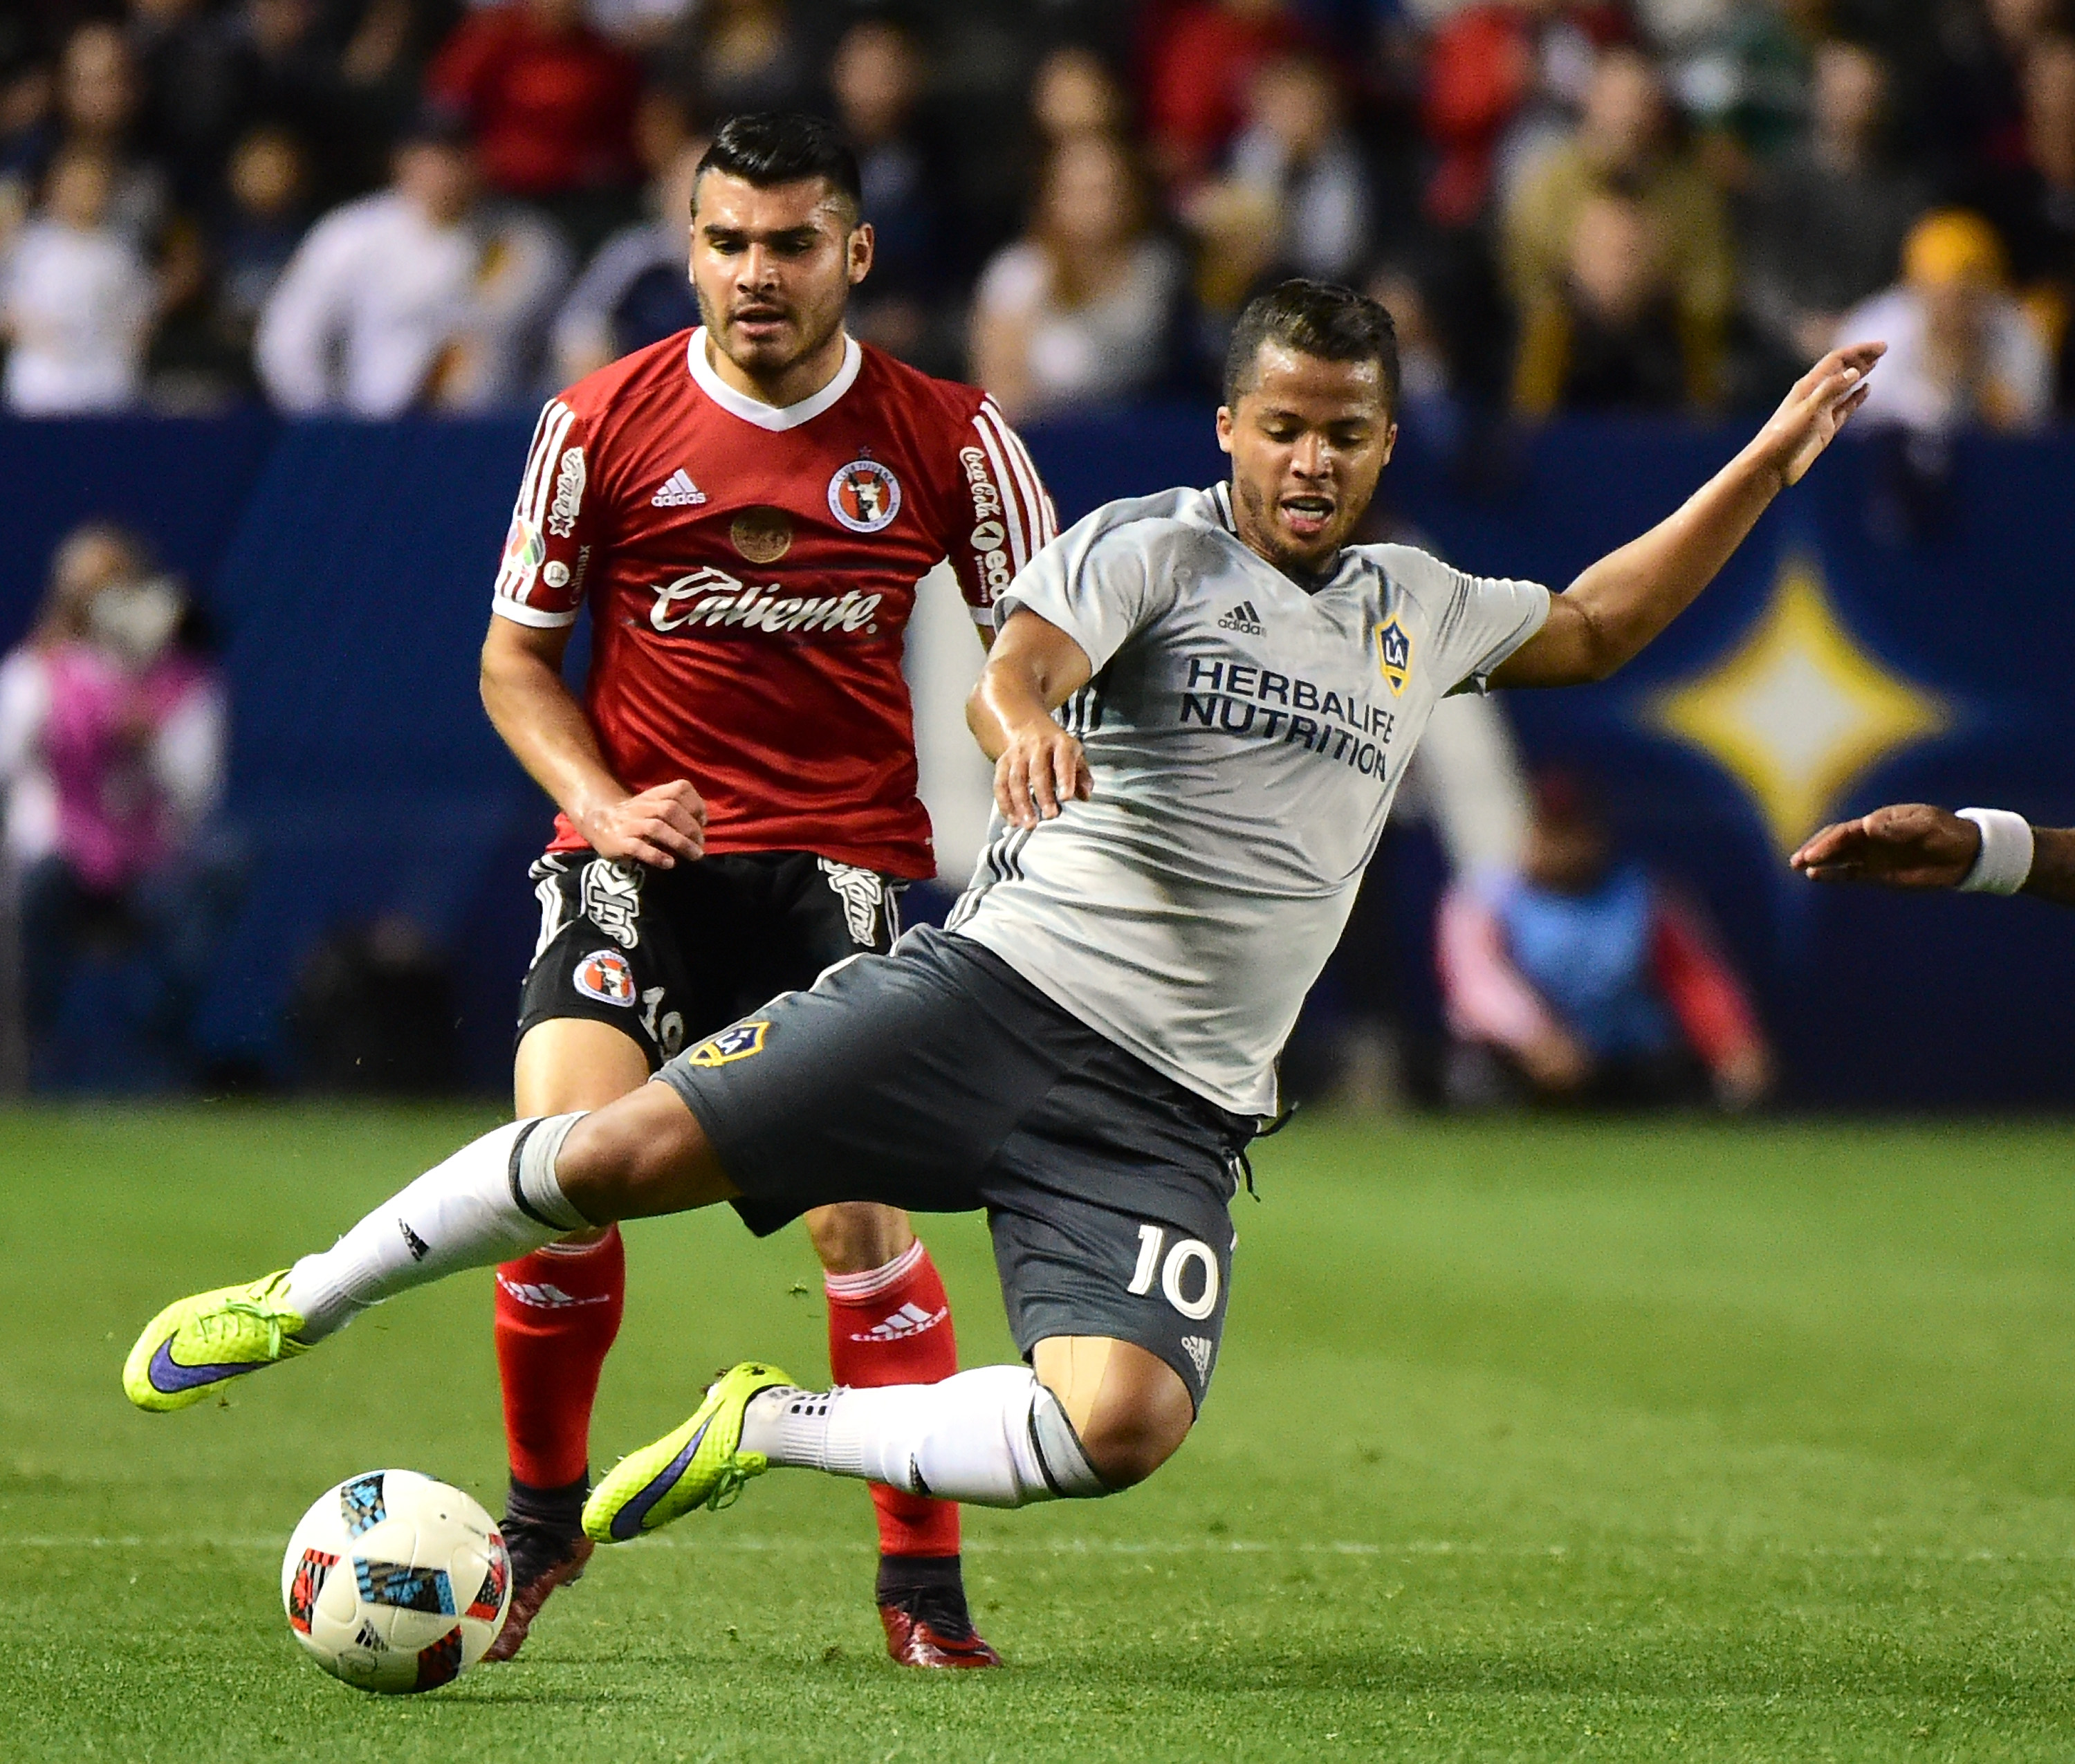 CARSON, CA - FEBRUARY 09: Giovani Dos Santos #10 of Los Angeles Galaxy is tripped by Alberto Garcia #19 of Club Tijuana during the second half at StubHub Center on February 9, 2016 in Carson, California. (Photo by Harry How/Getty Images)